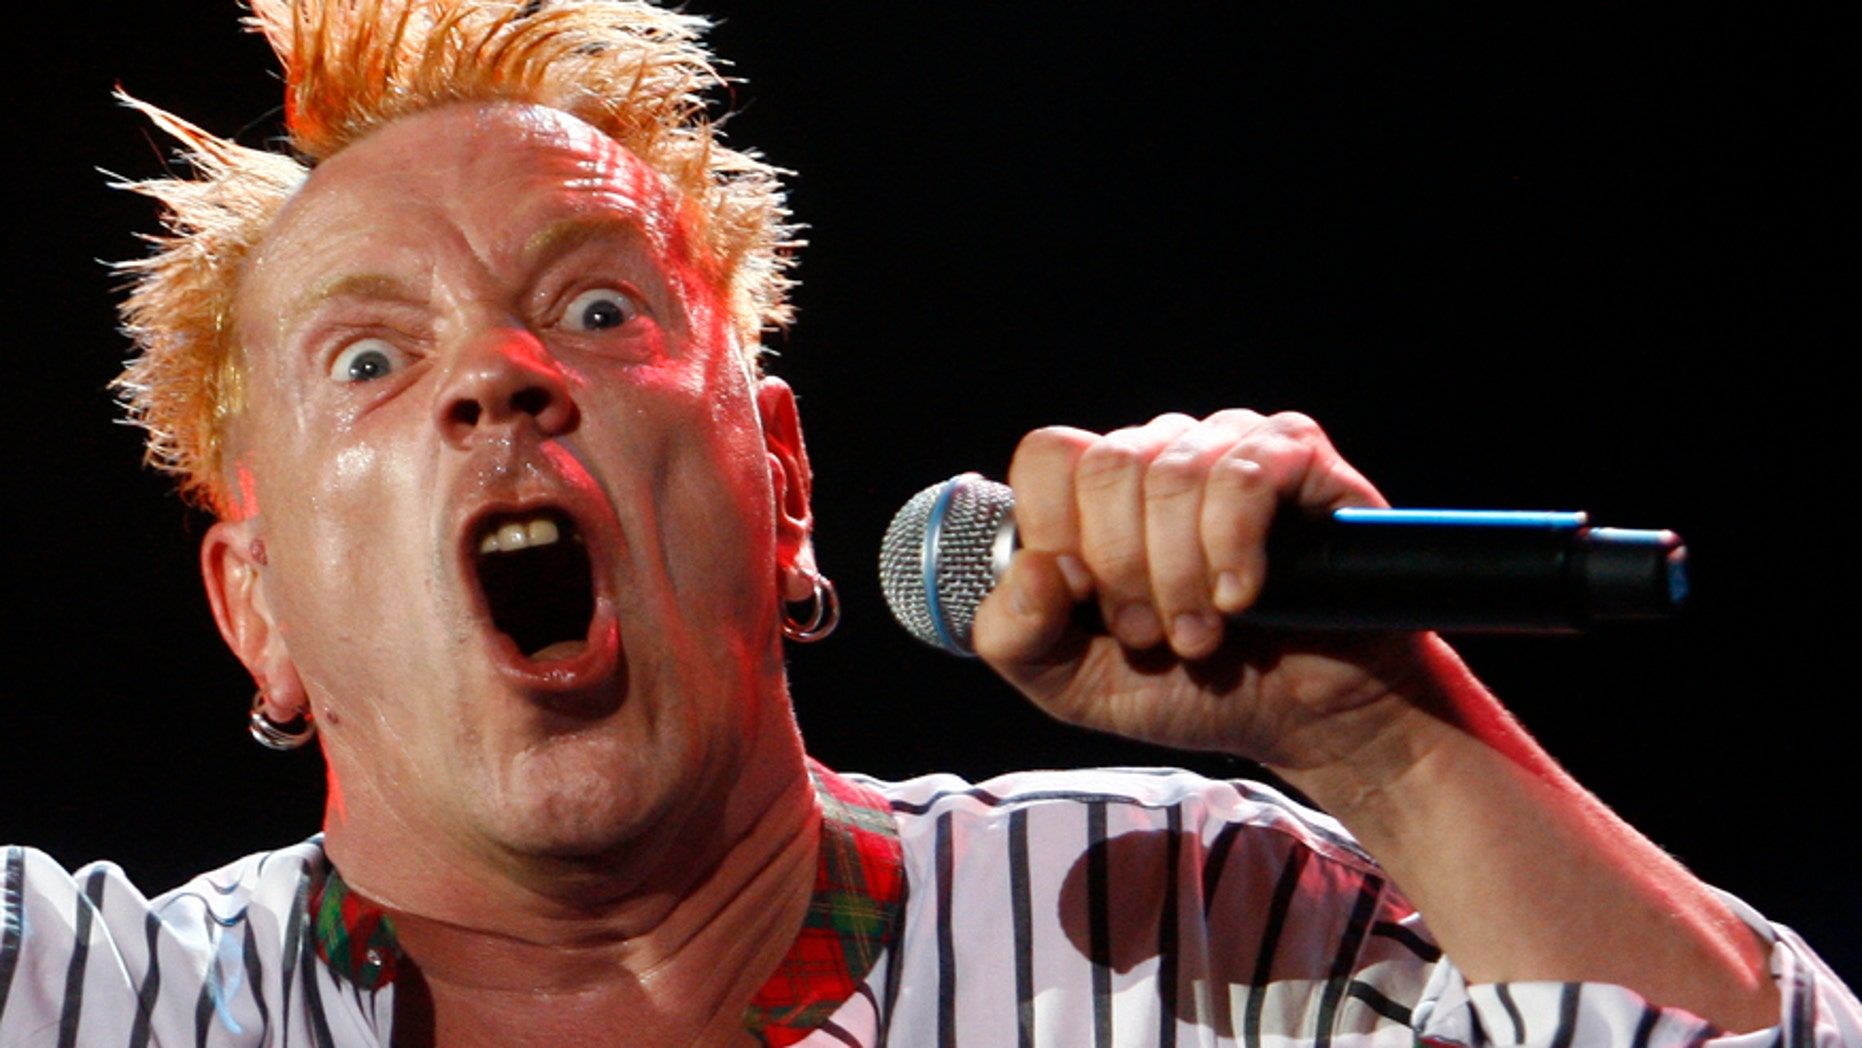 Johnny Rotten performs with the Sex Pistols during the Exit music festival in Novi Sad, northerm Serbia, July 14, 2008.